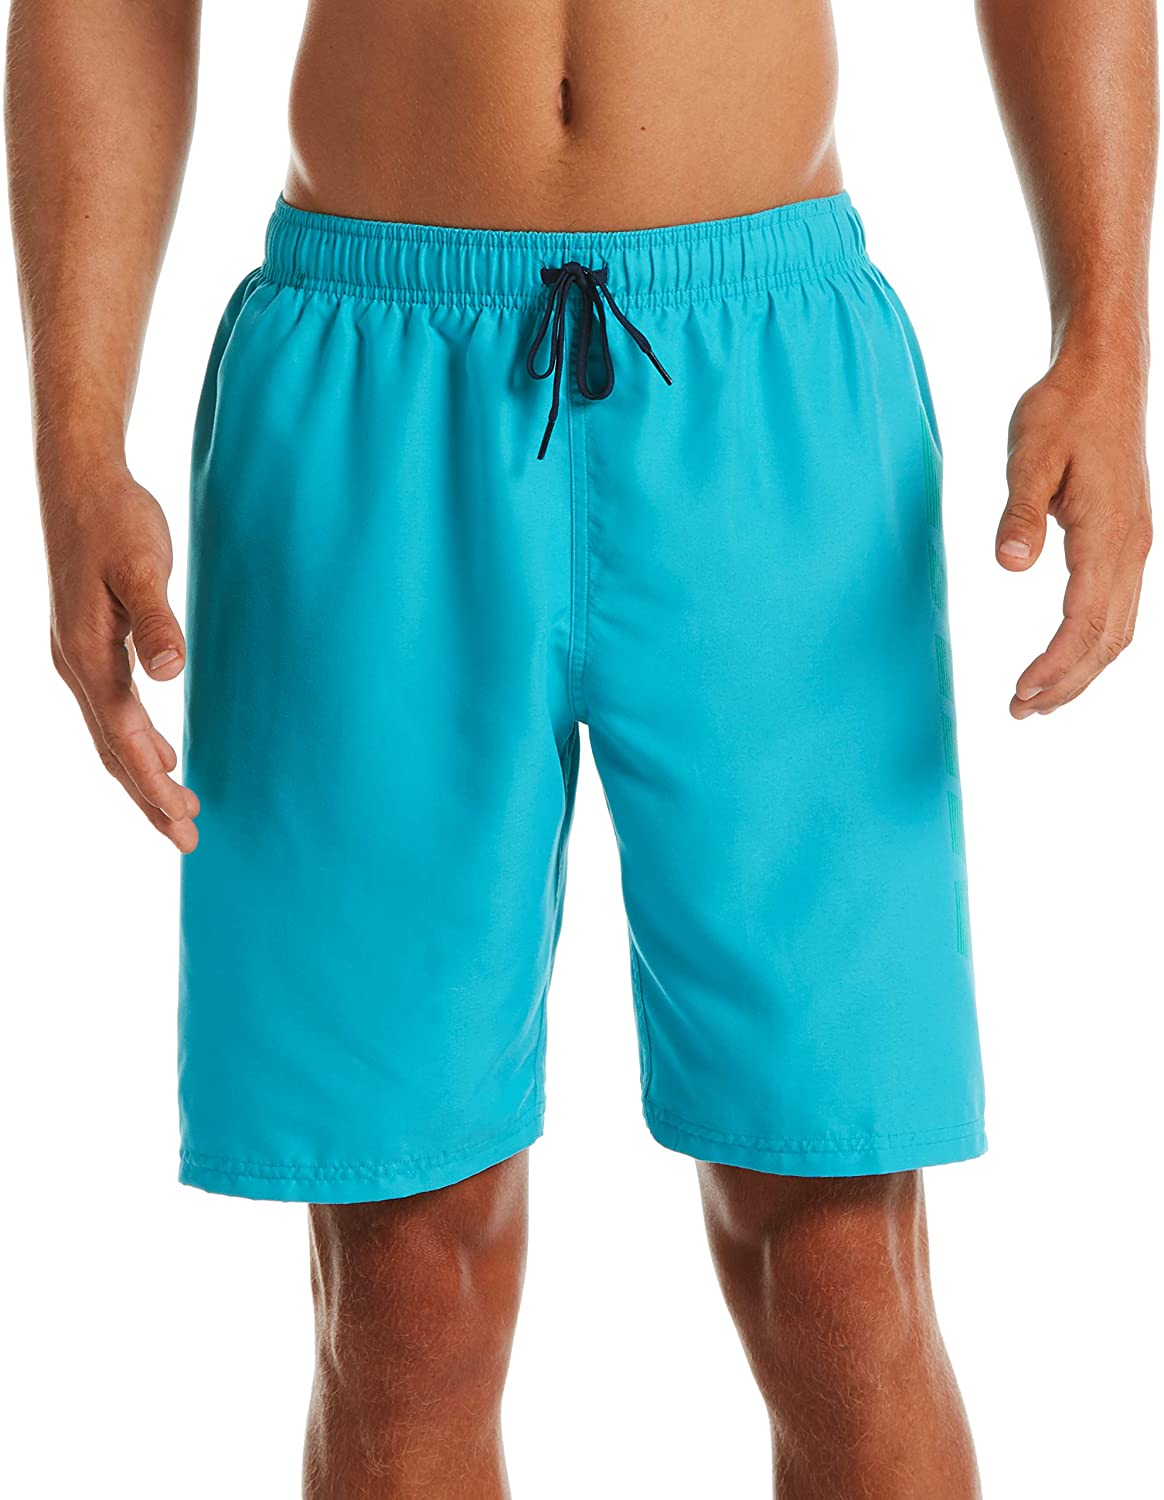 Men's Nike Logo Volley Short Swim Trunk in Oracle Aqua color from the front